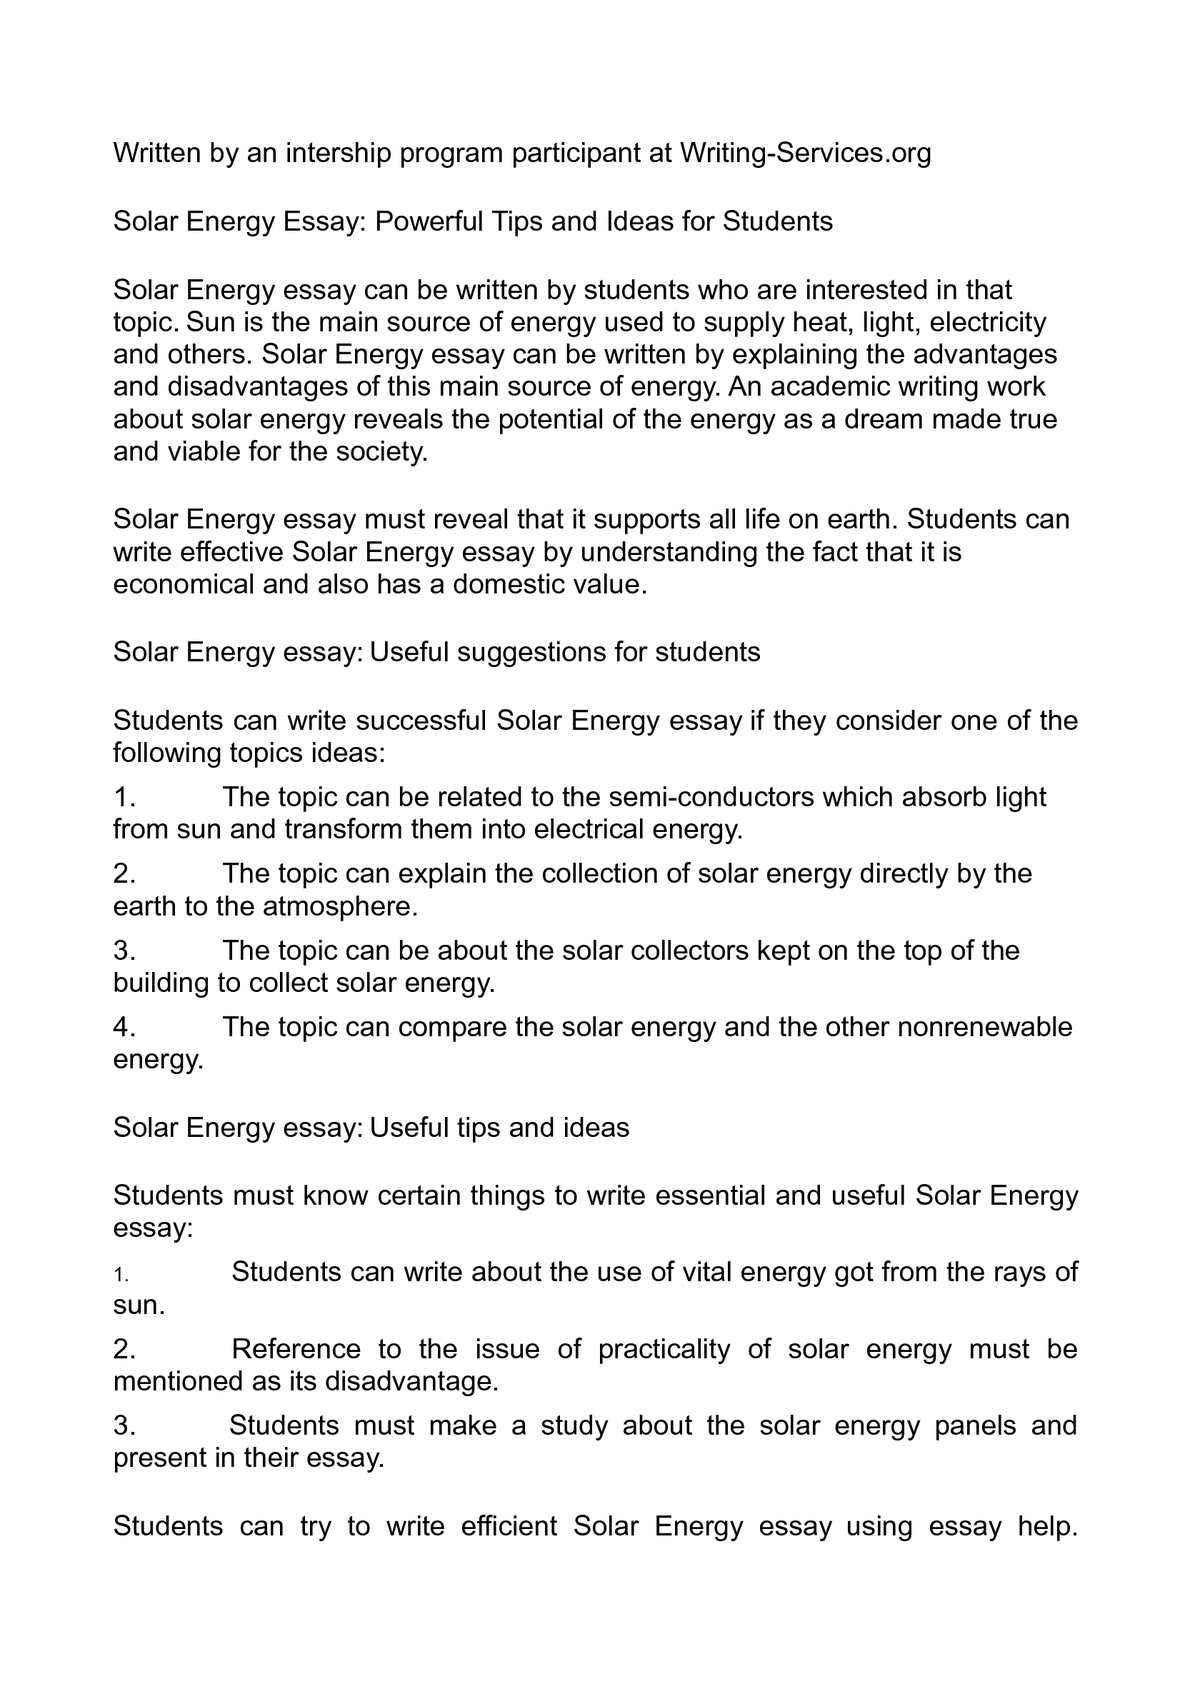 energy essay writing Energy essay writing research papers writers use liam: november 13, 2017 oh noa student spelled barack baraque in her sat essay hefty spelling error, my friend.